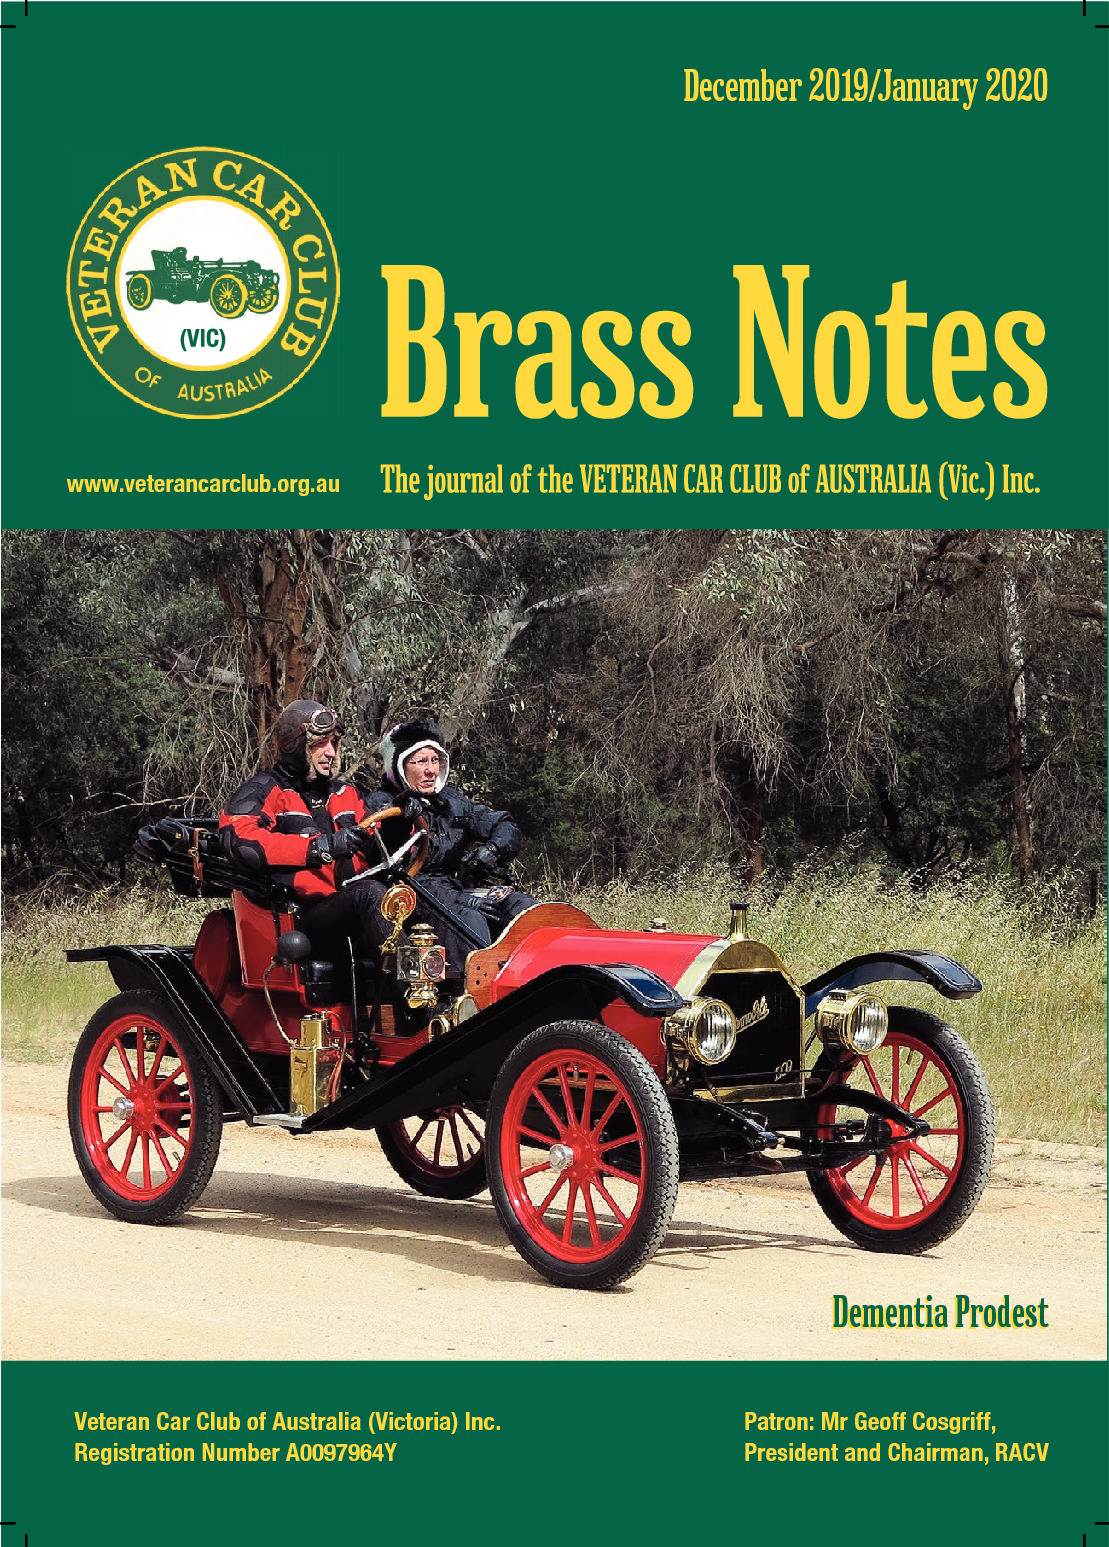 Brass Notes December 2019/January 2020